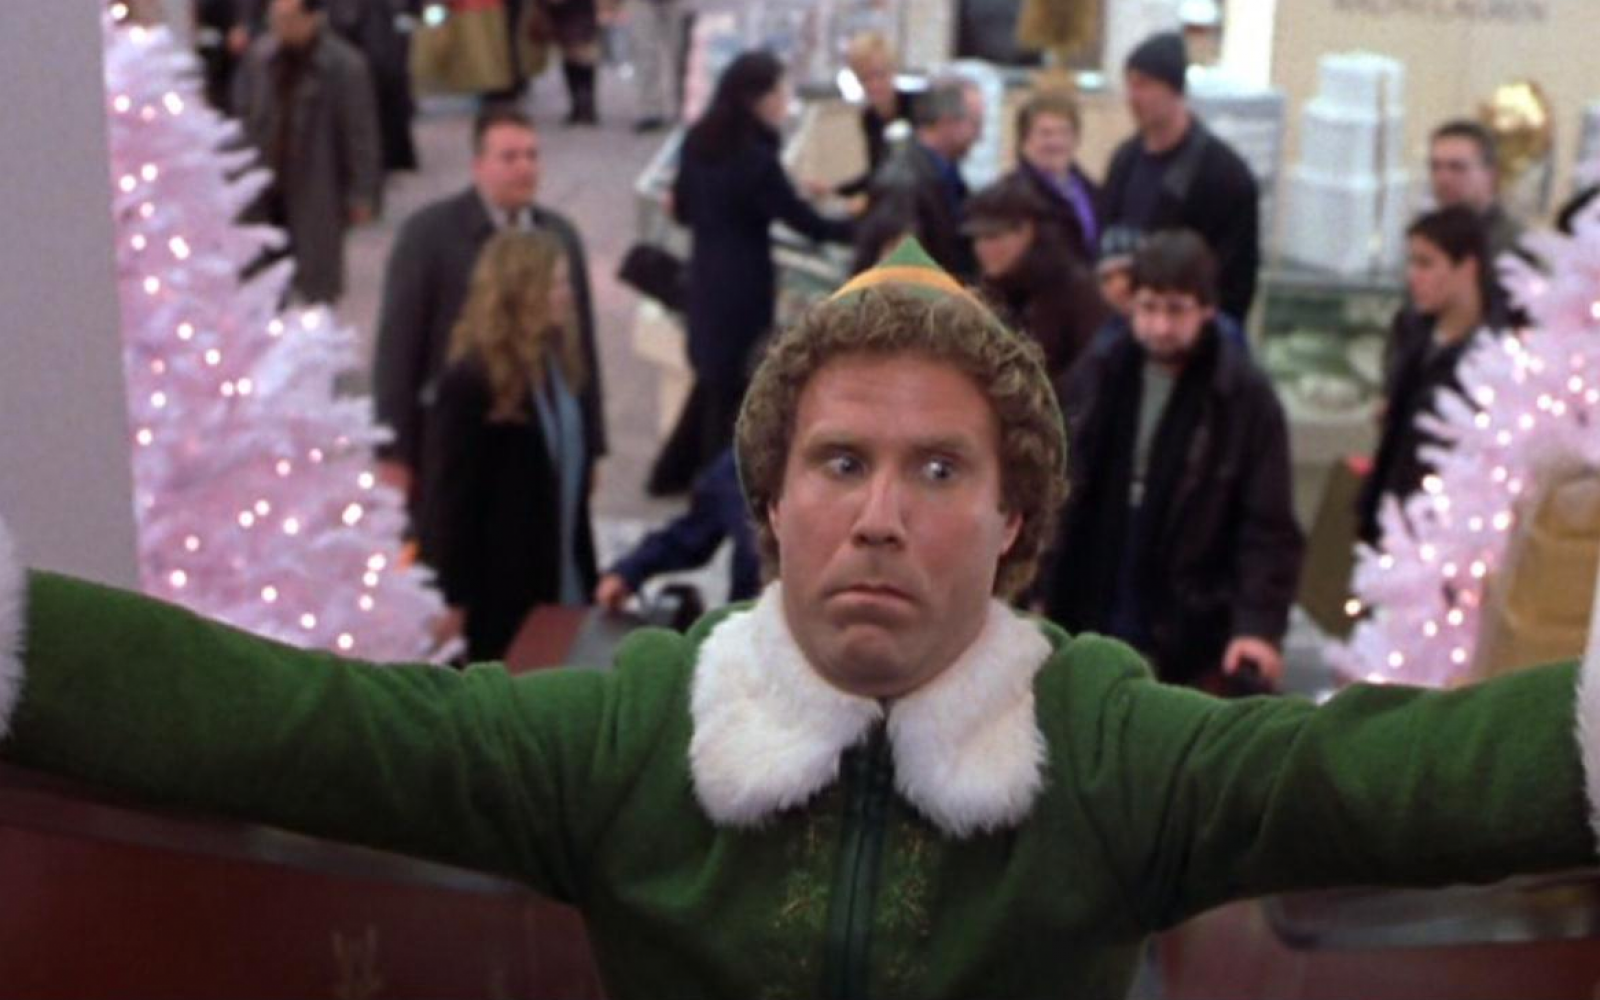 26 Of The Greatest 'Elf' Quotes We Could All Use In Everyday Life